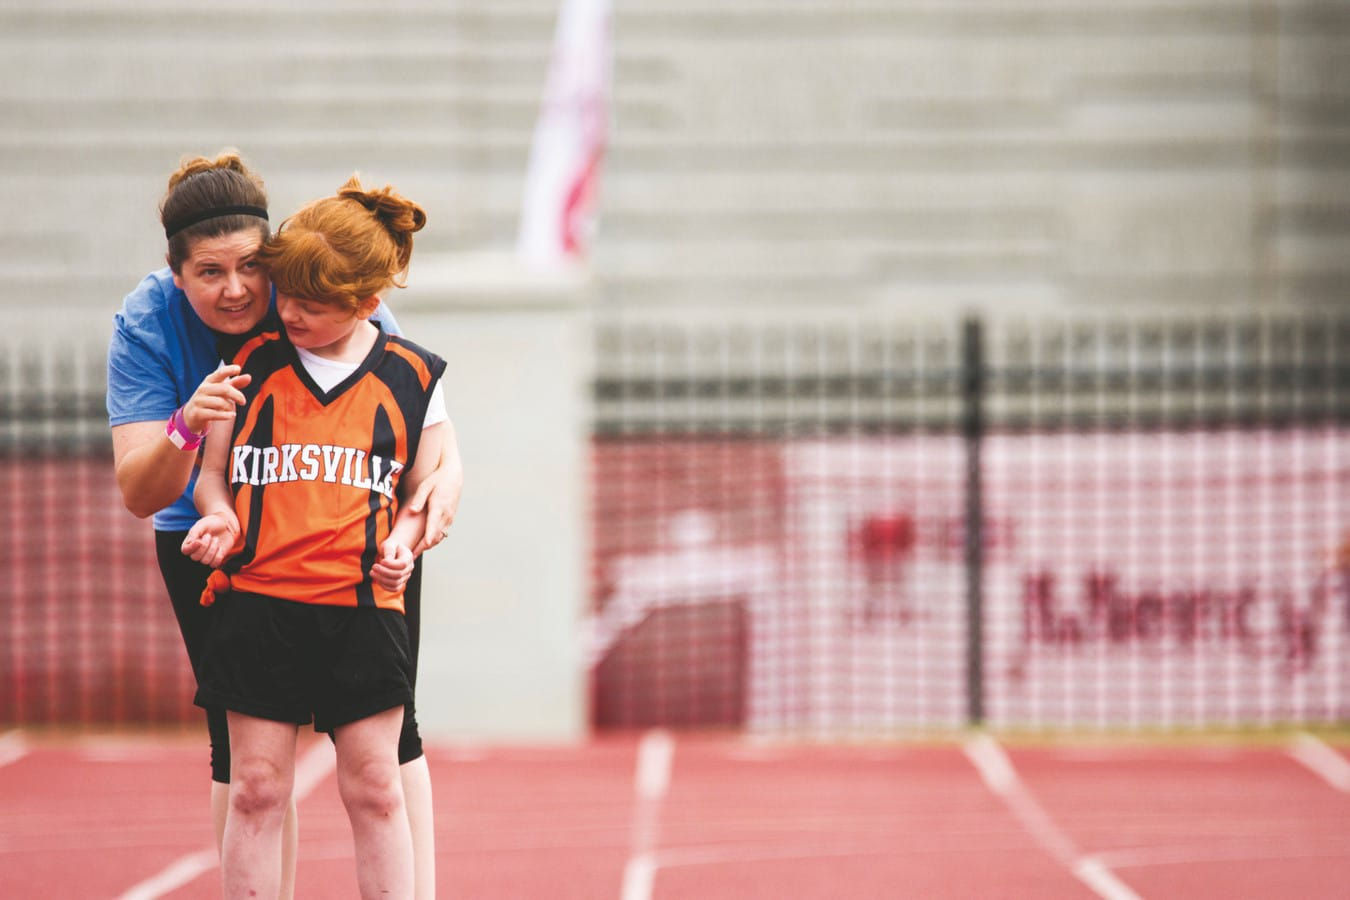 A coach stands behind a young Kirksville athlete on a track and points in the direction they need to run